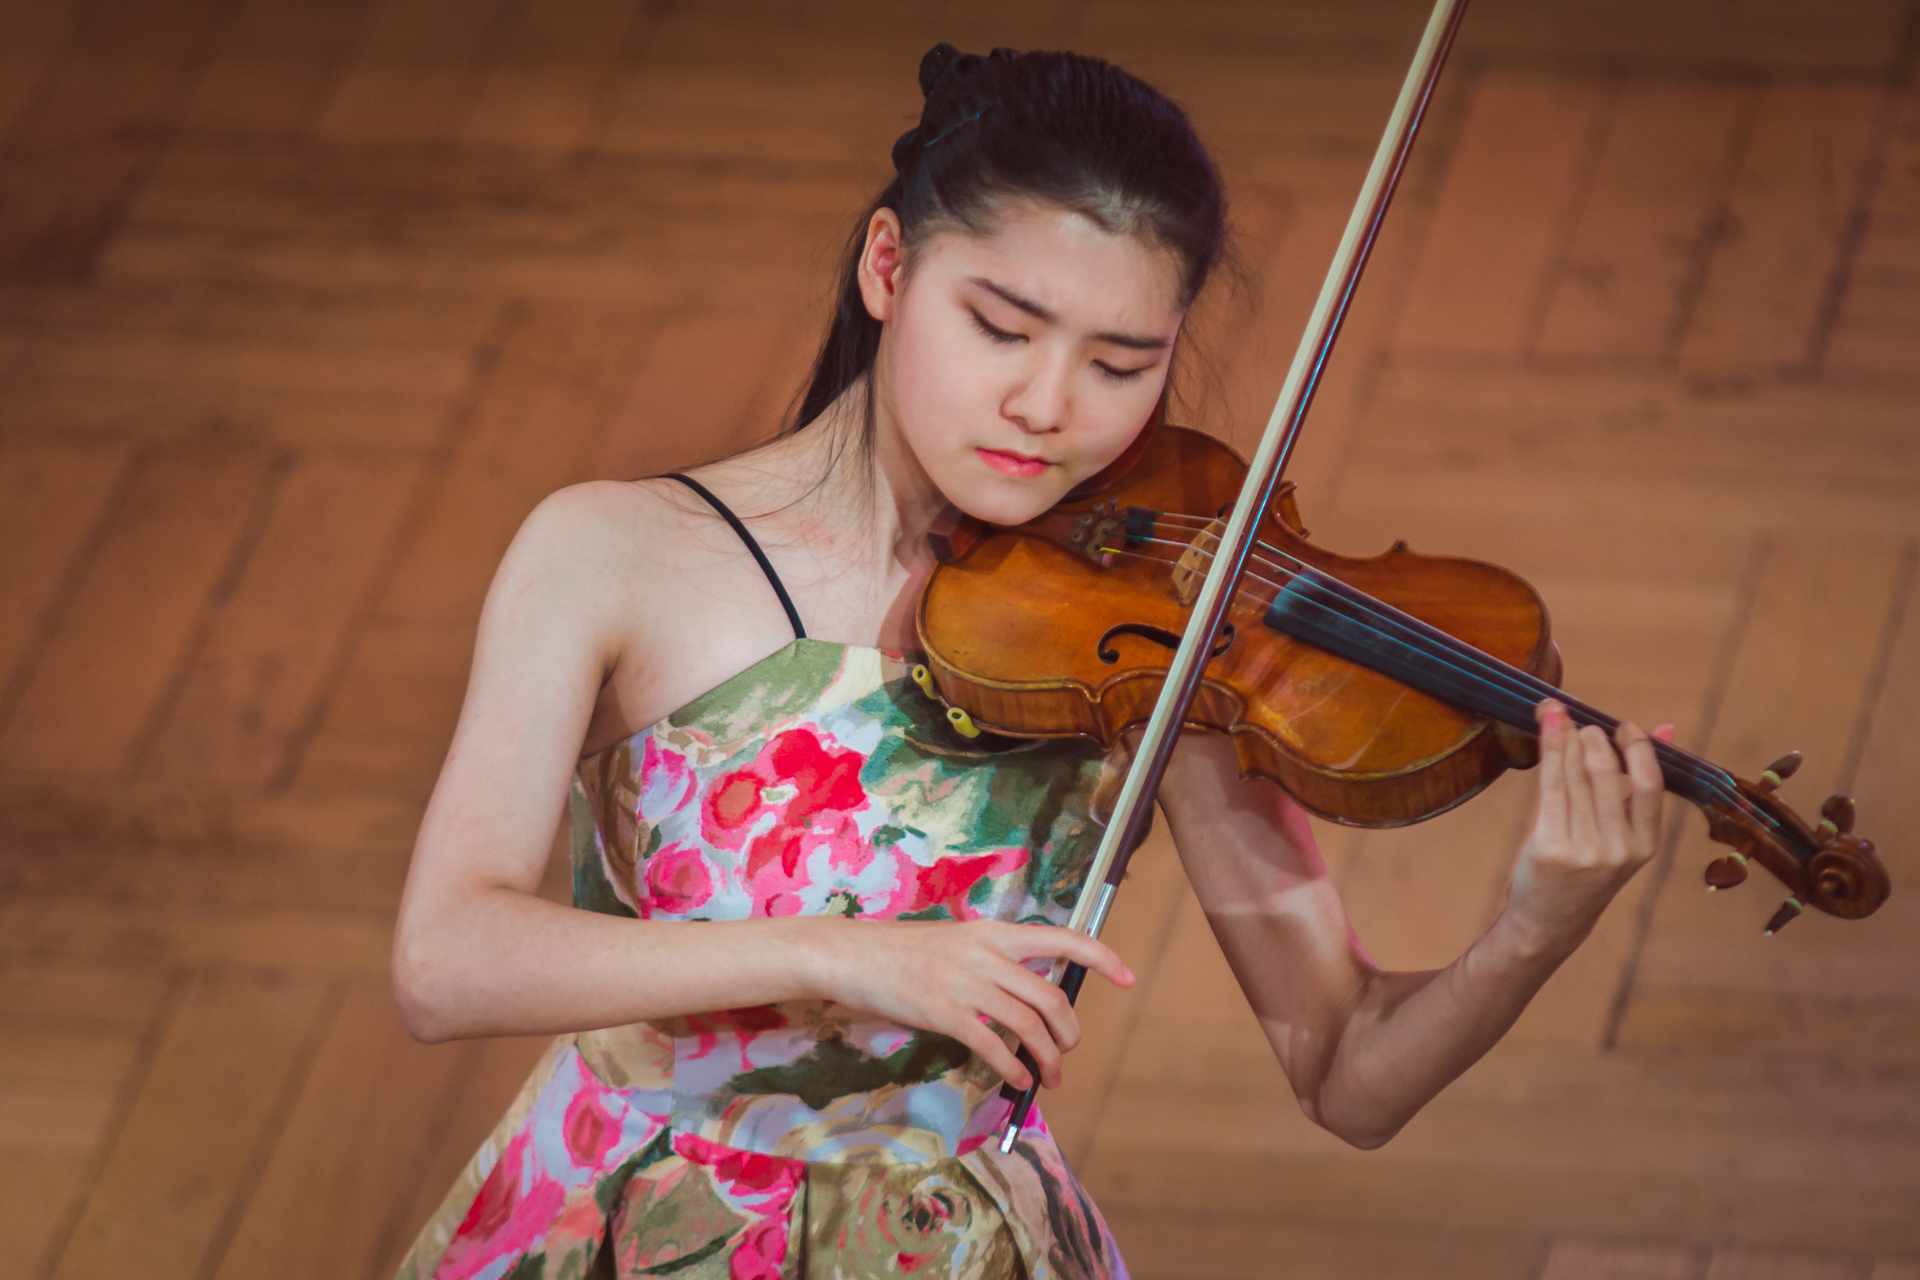 Mone Hattori (Japan) - Stage 2 - 15th International H. Wieniawski Violin Competition STEREO